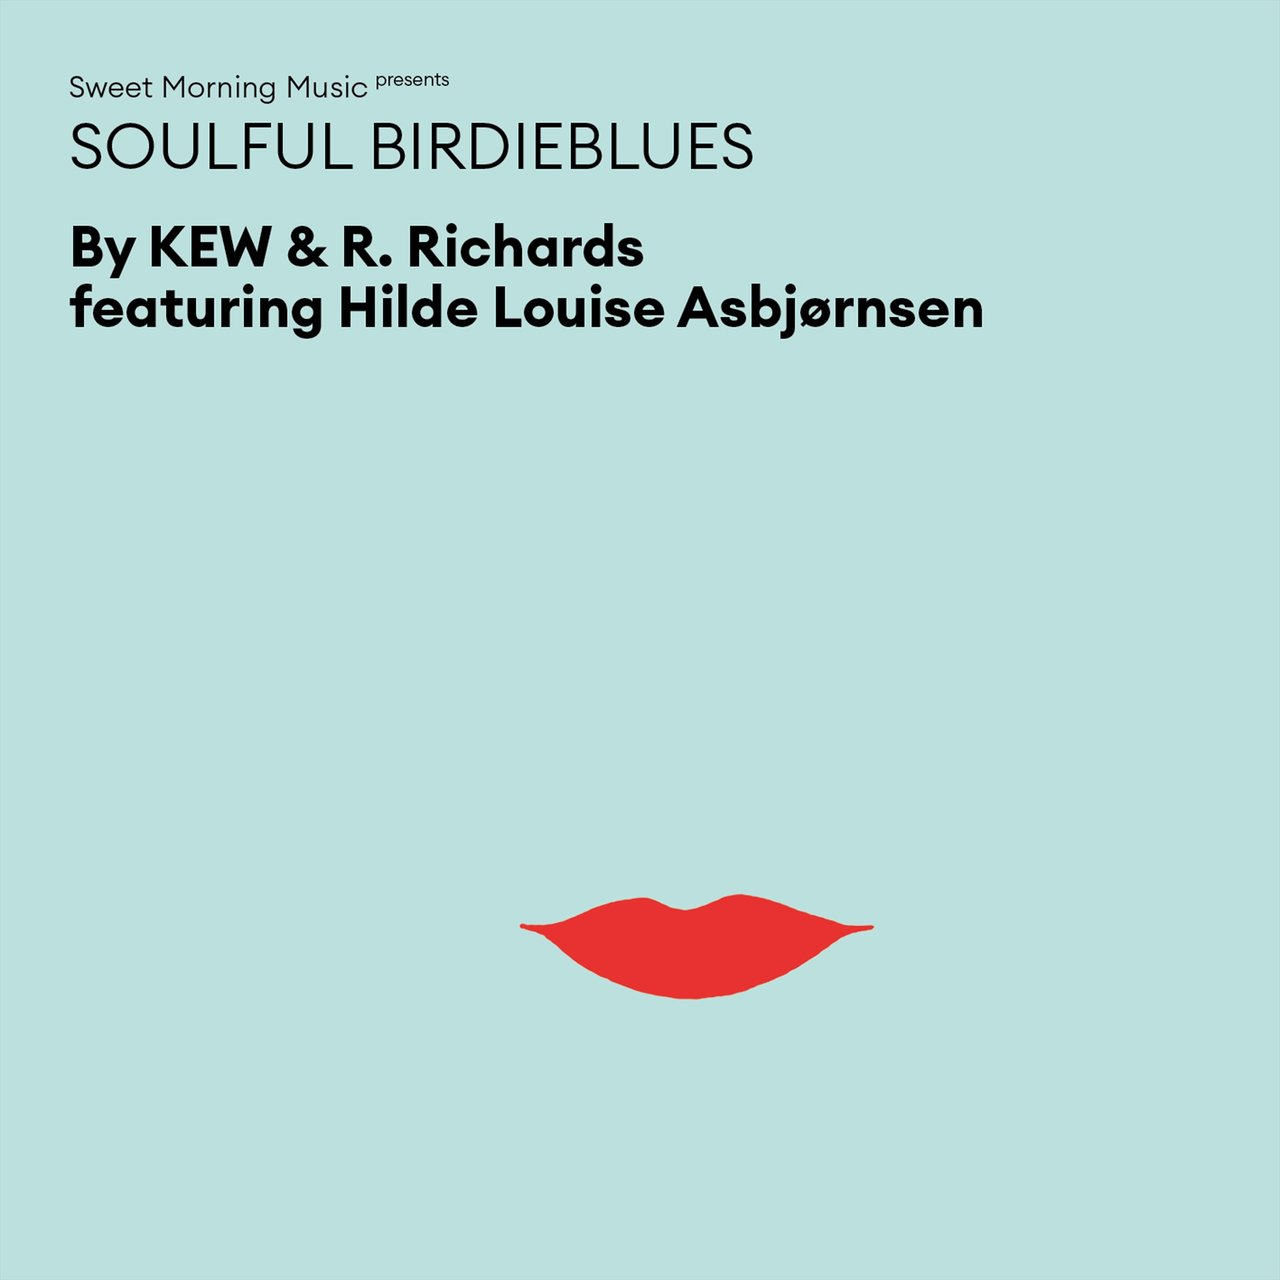 Soulful Birdieblues